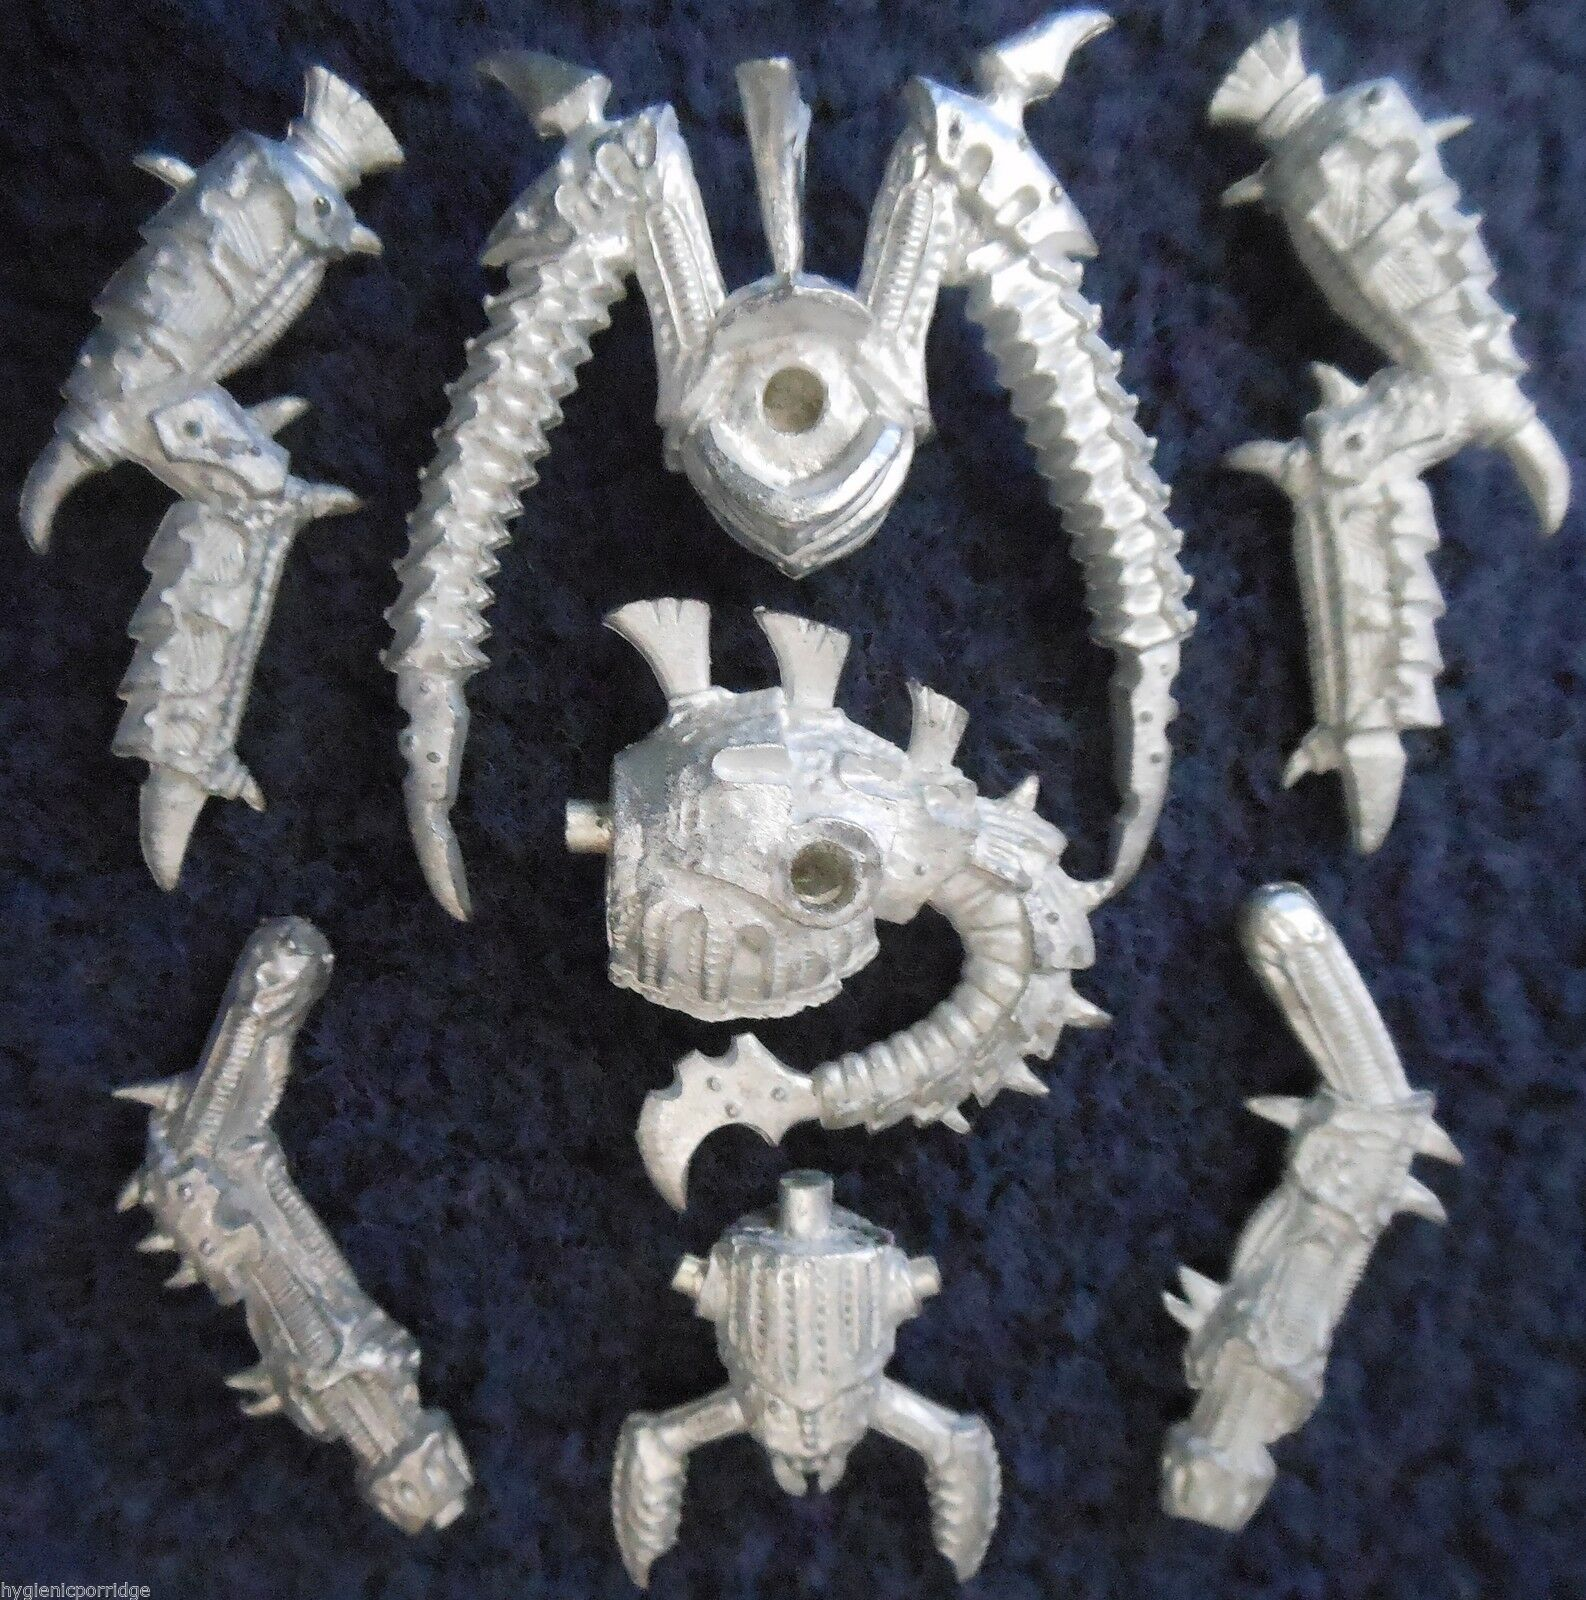 1995 Epic Tyranid Bio Titan Hierodule 2 Games Workshop Warhammer Army 6mm 40K GW